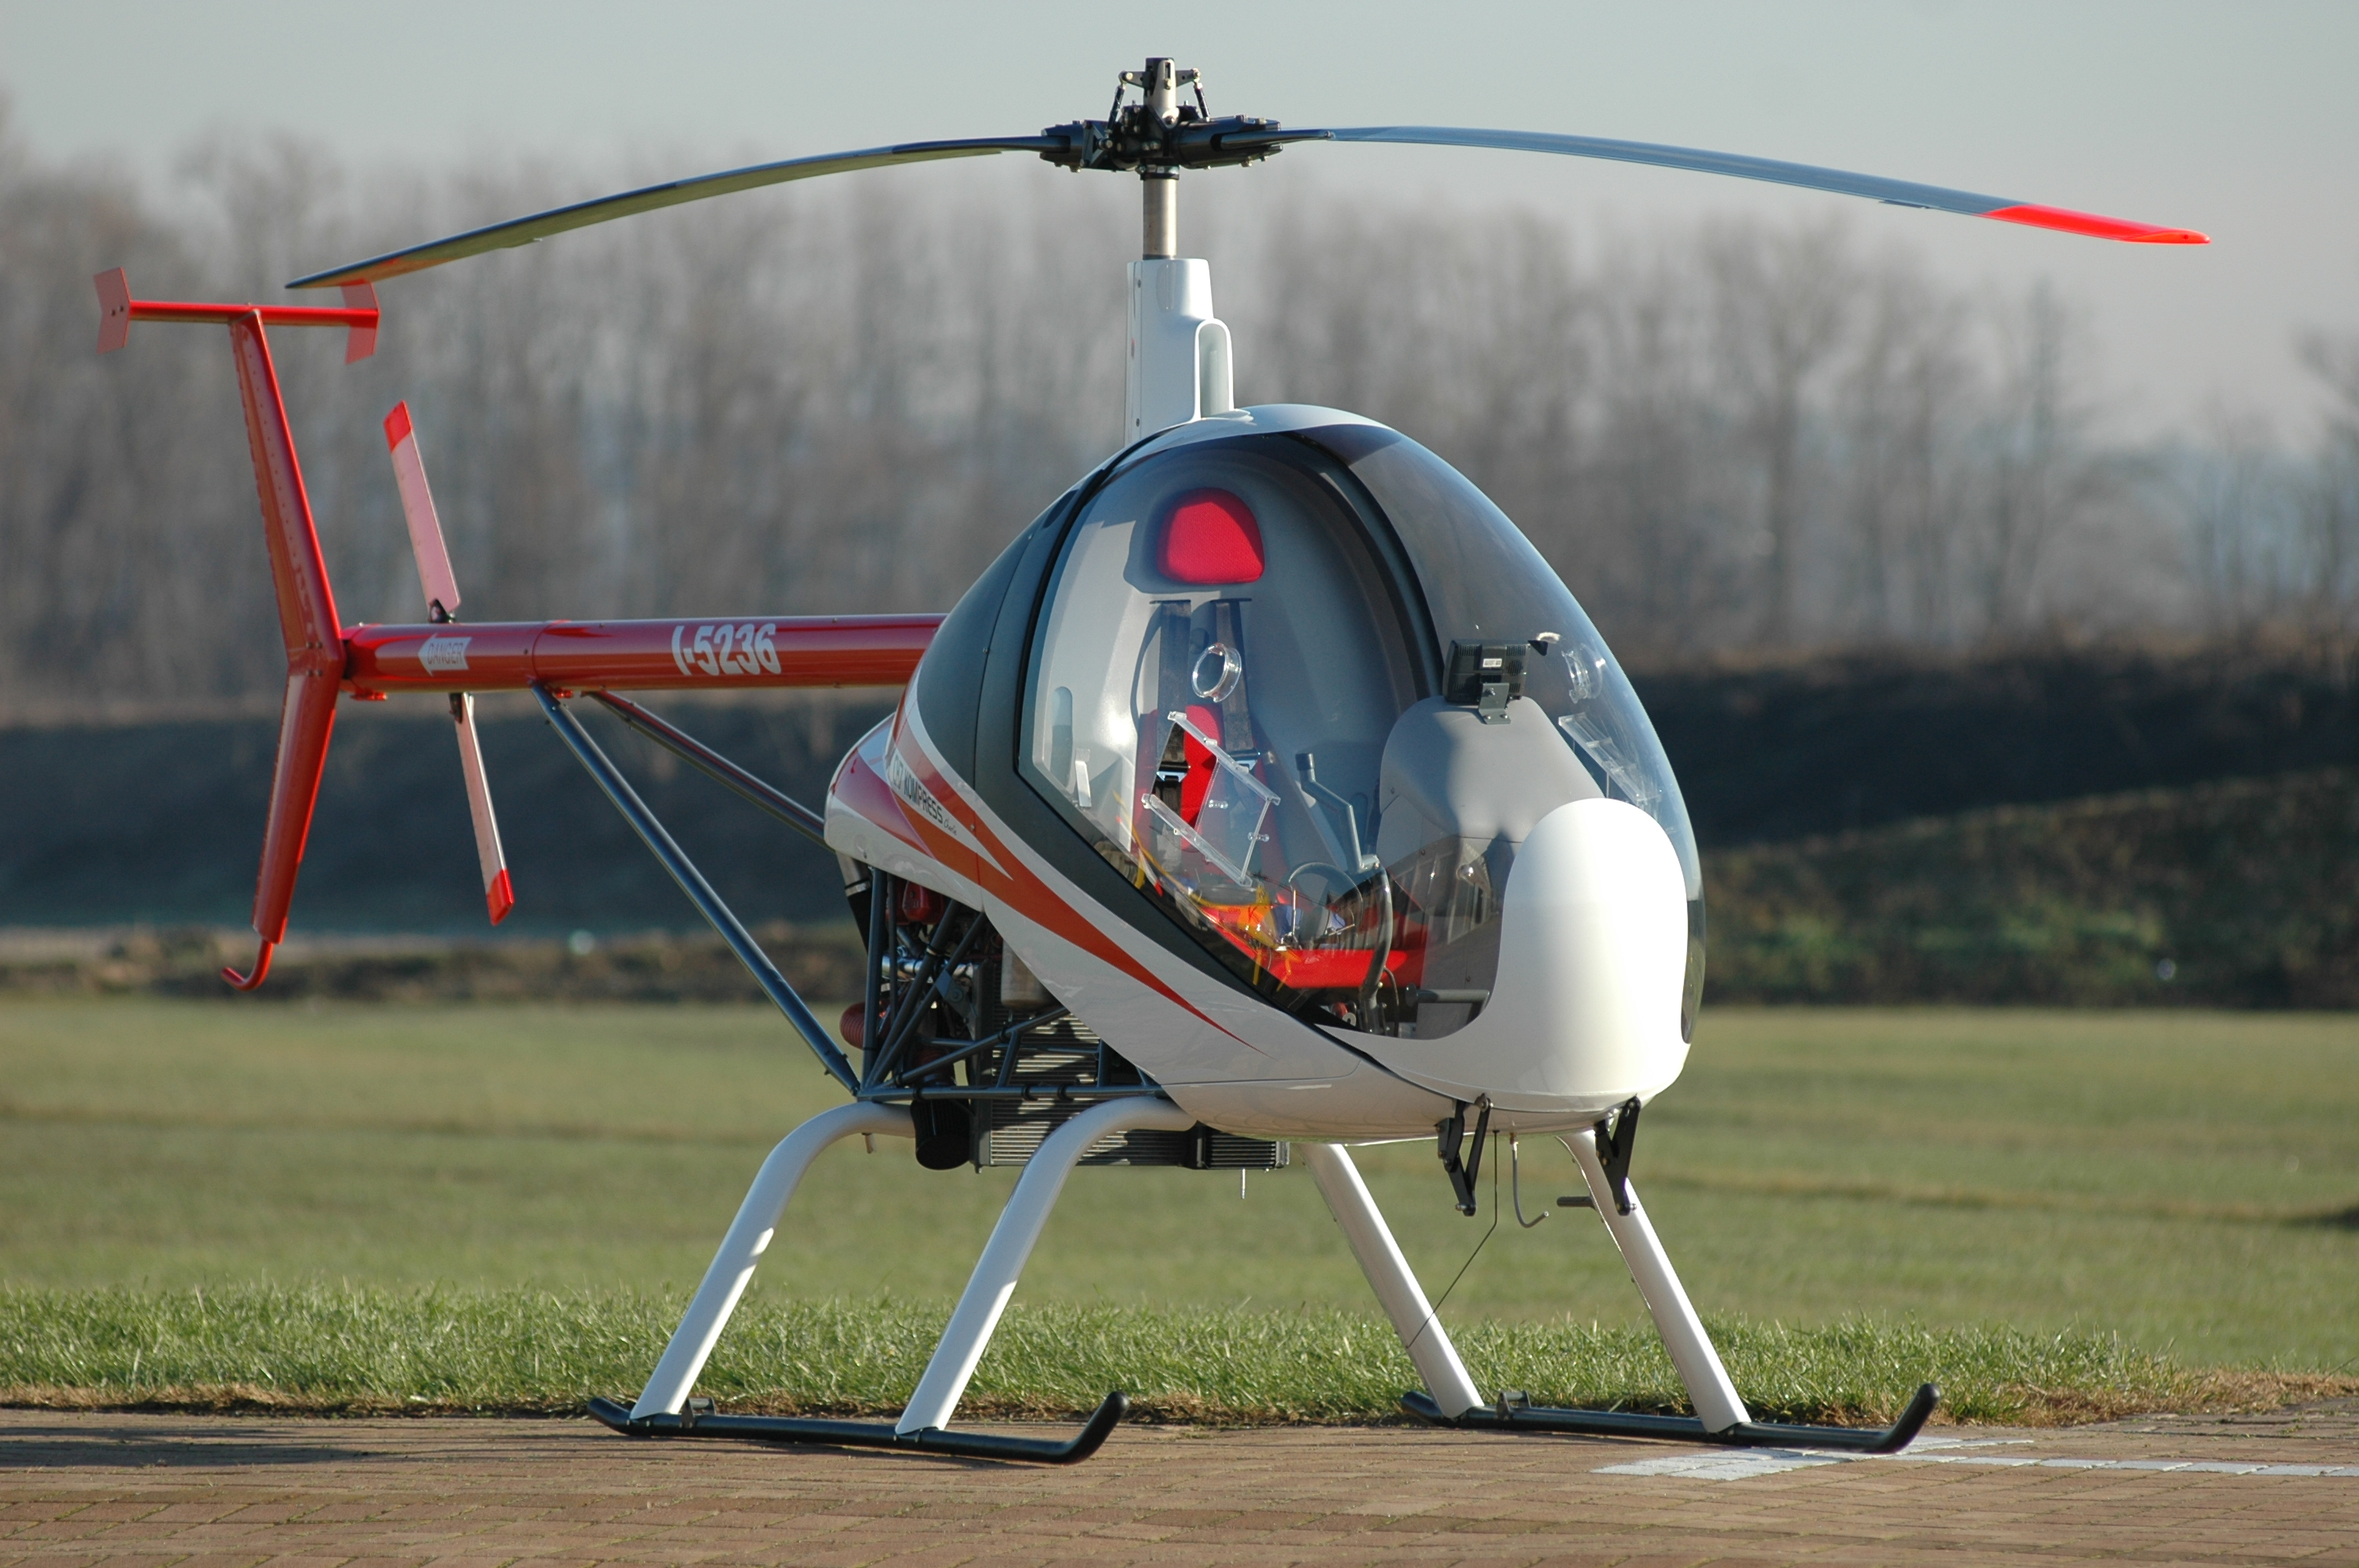 schweizer helicopter for sale with File Ch7 Kompress on Watch besides Airbus H 145 Eurocopter Ec 145 furthermore 1983 Bell 222 SP as well 2002 Beechcraft King Air 350 likewise Accidents ch 7.